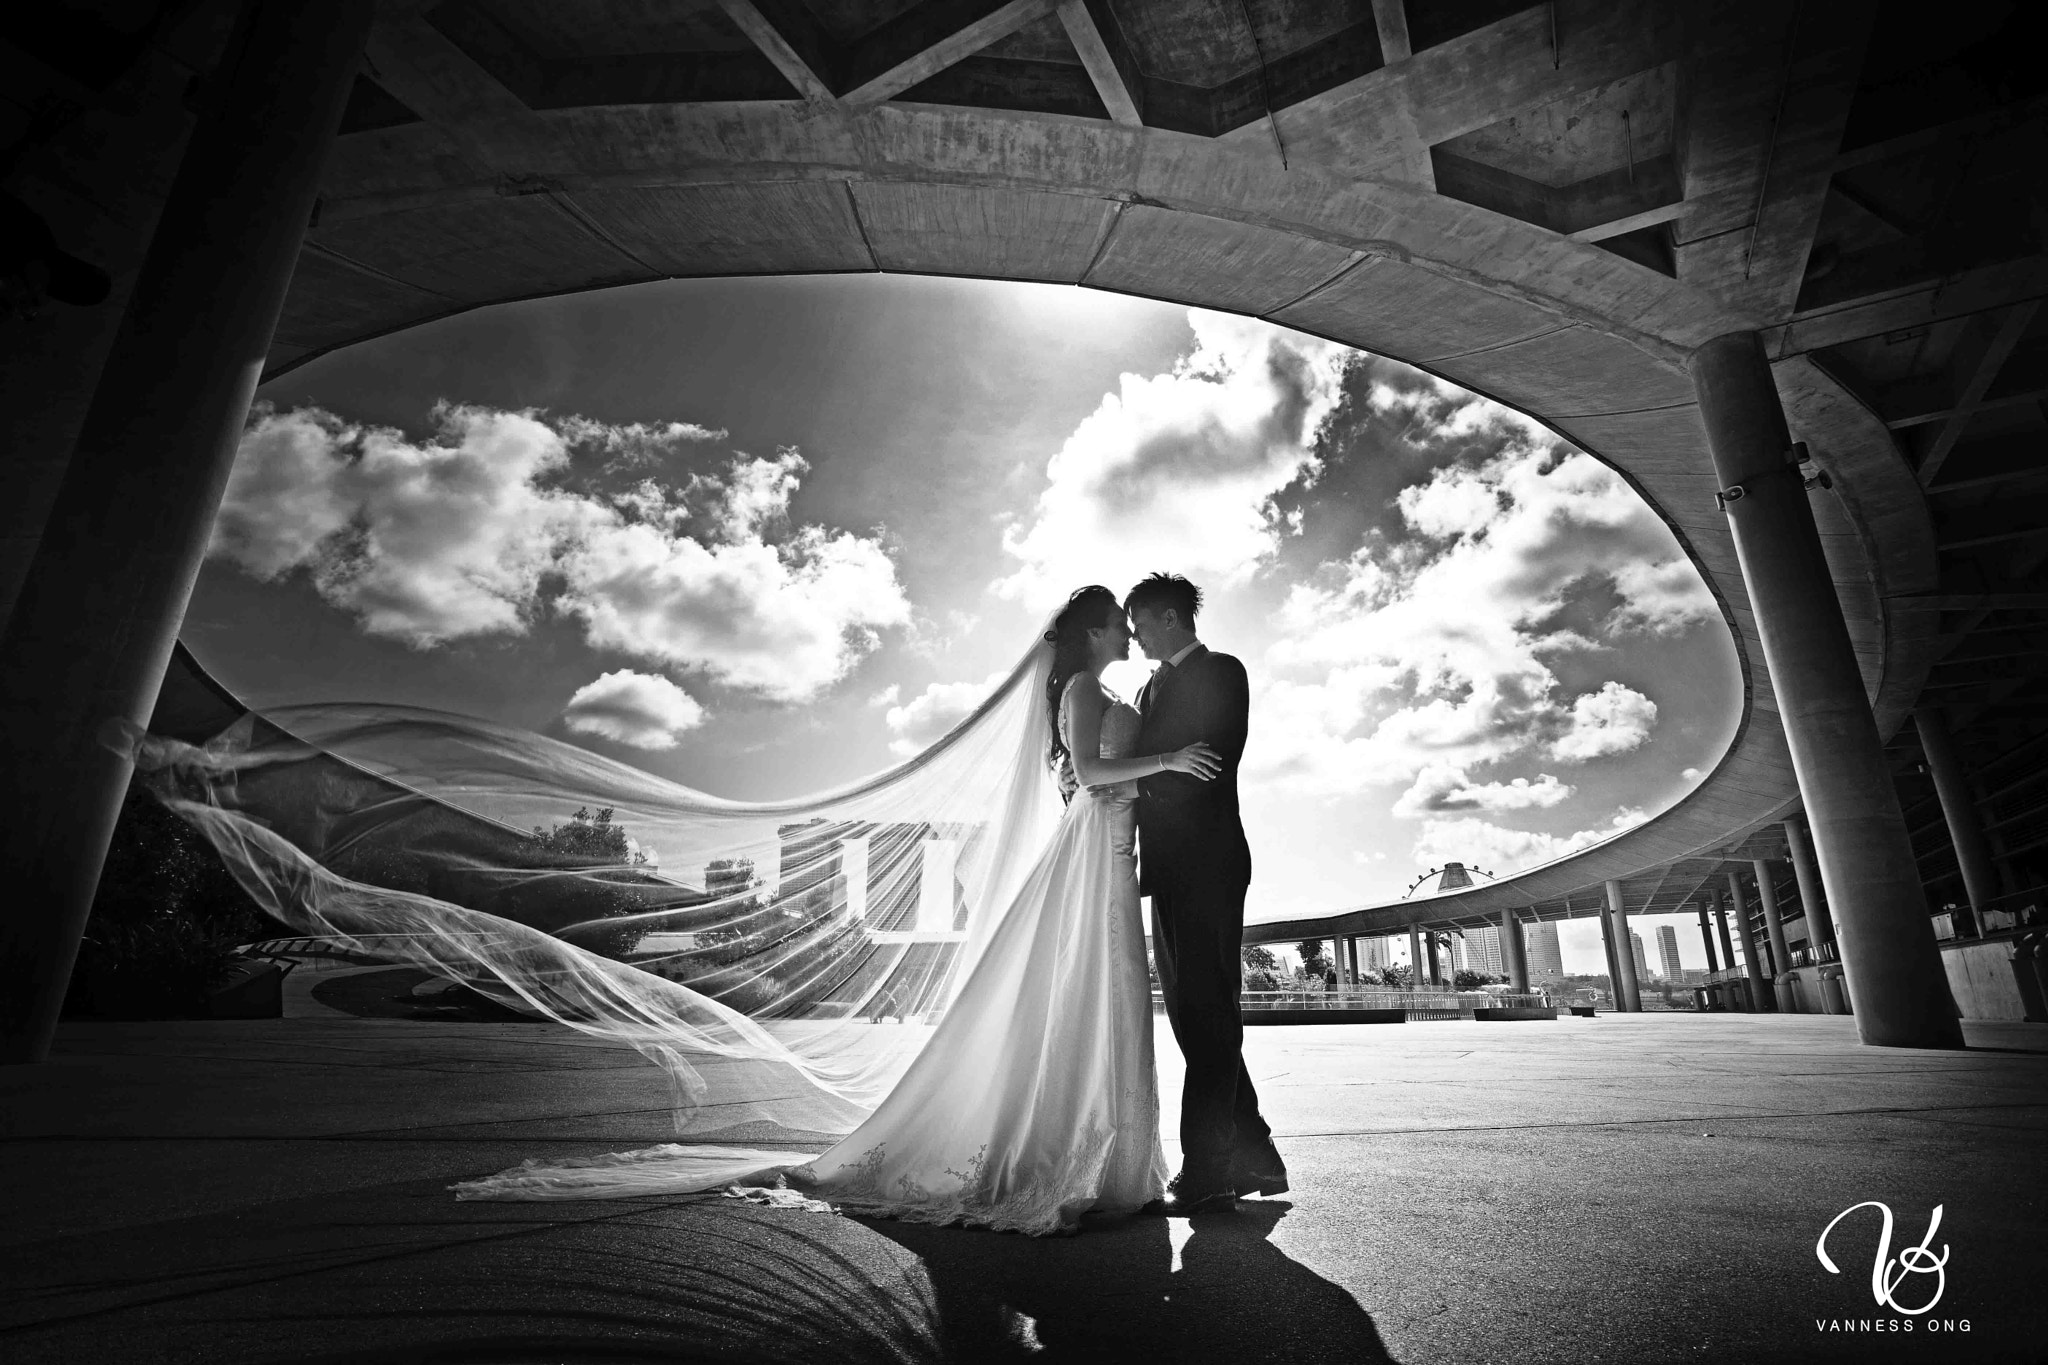 Photograph Wedding by Vanness Ong on 500px